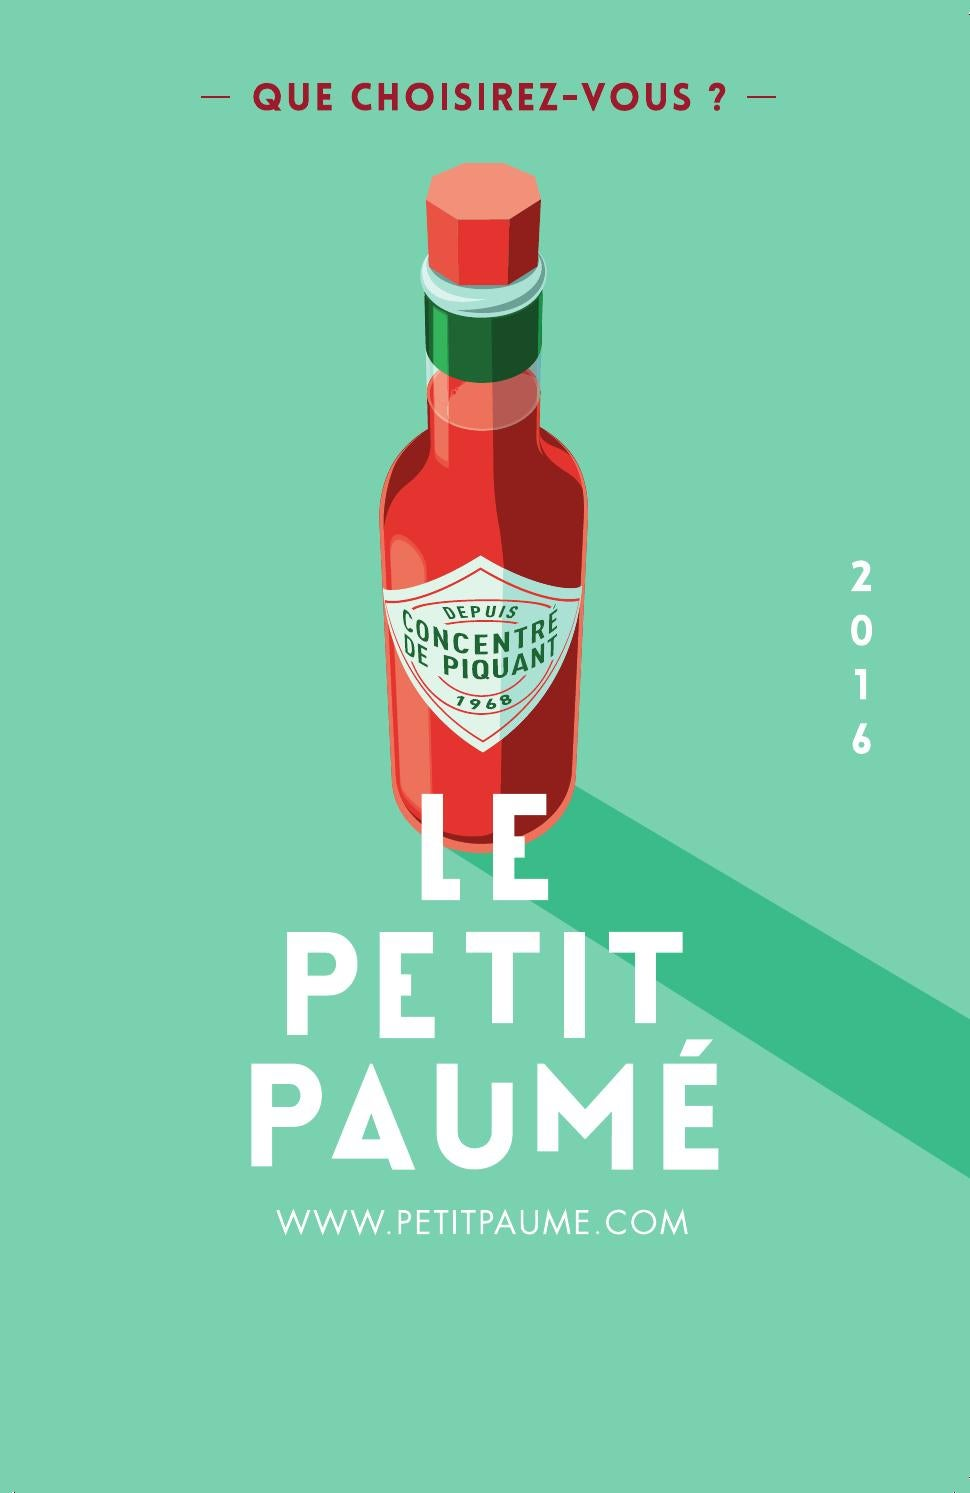 reputable site 743ba 74417 Le Petit Paumé - Edition 2016 (Piquant) - City-Guide de Lyon by Le Petit  Paumé - issuu